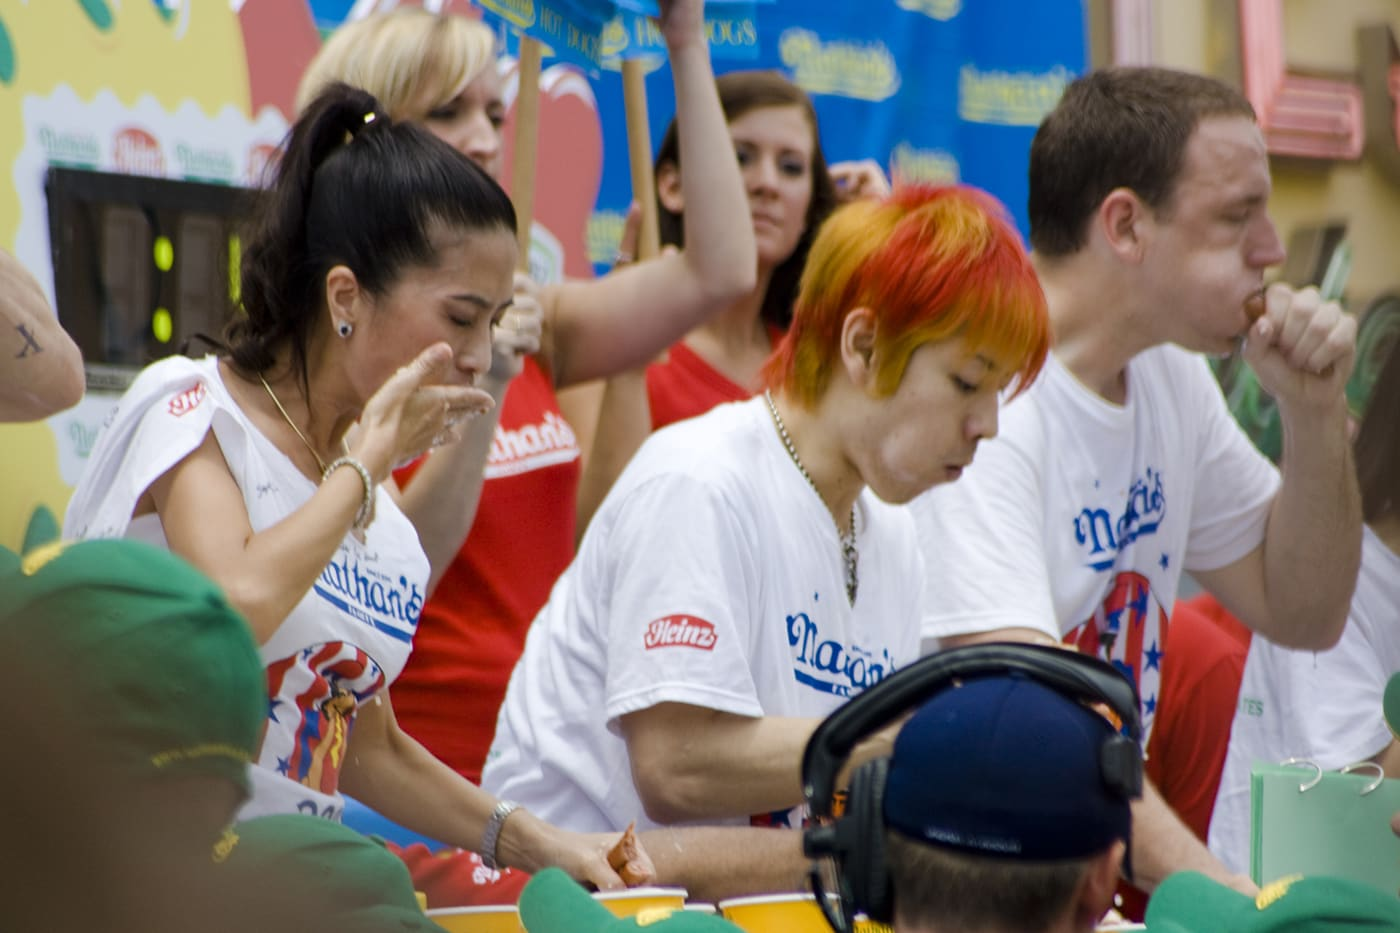 Takeru Kobayashi at the July 4th Coney Island Hot Dog Eating Contest